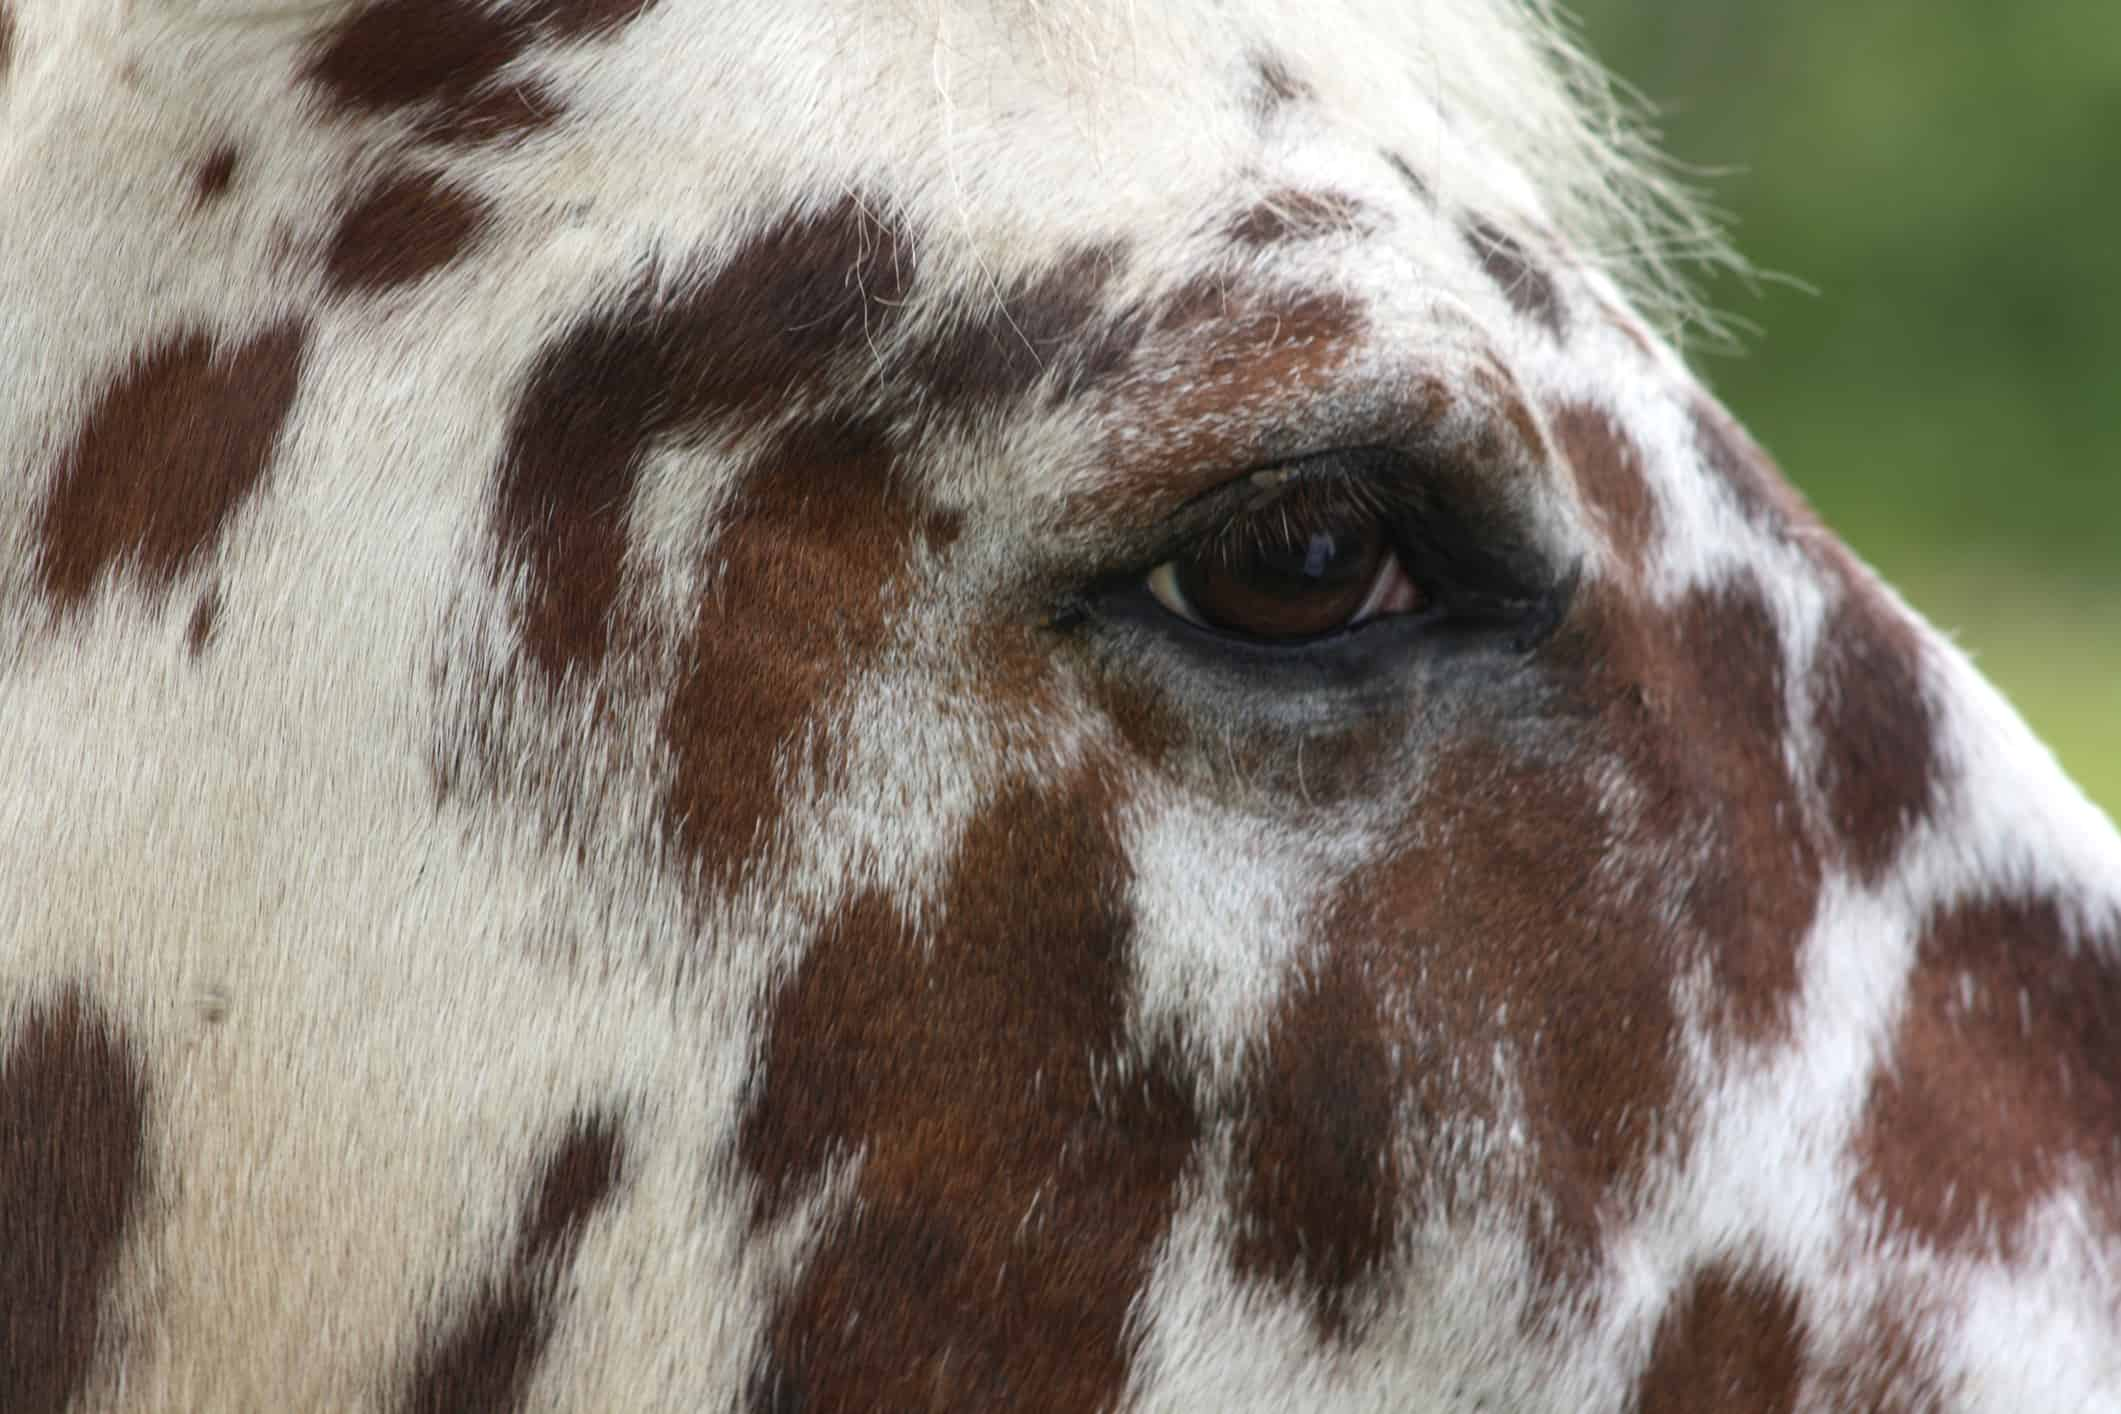 Tigered horse in close up